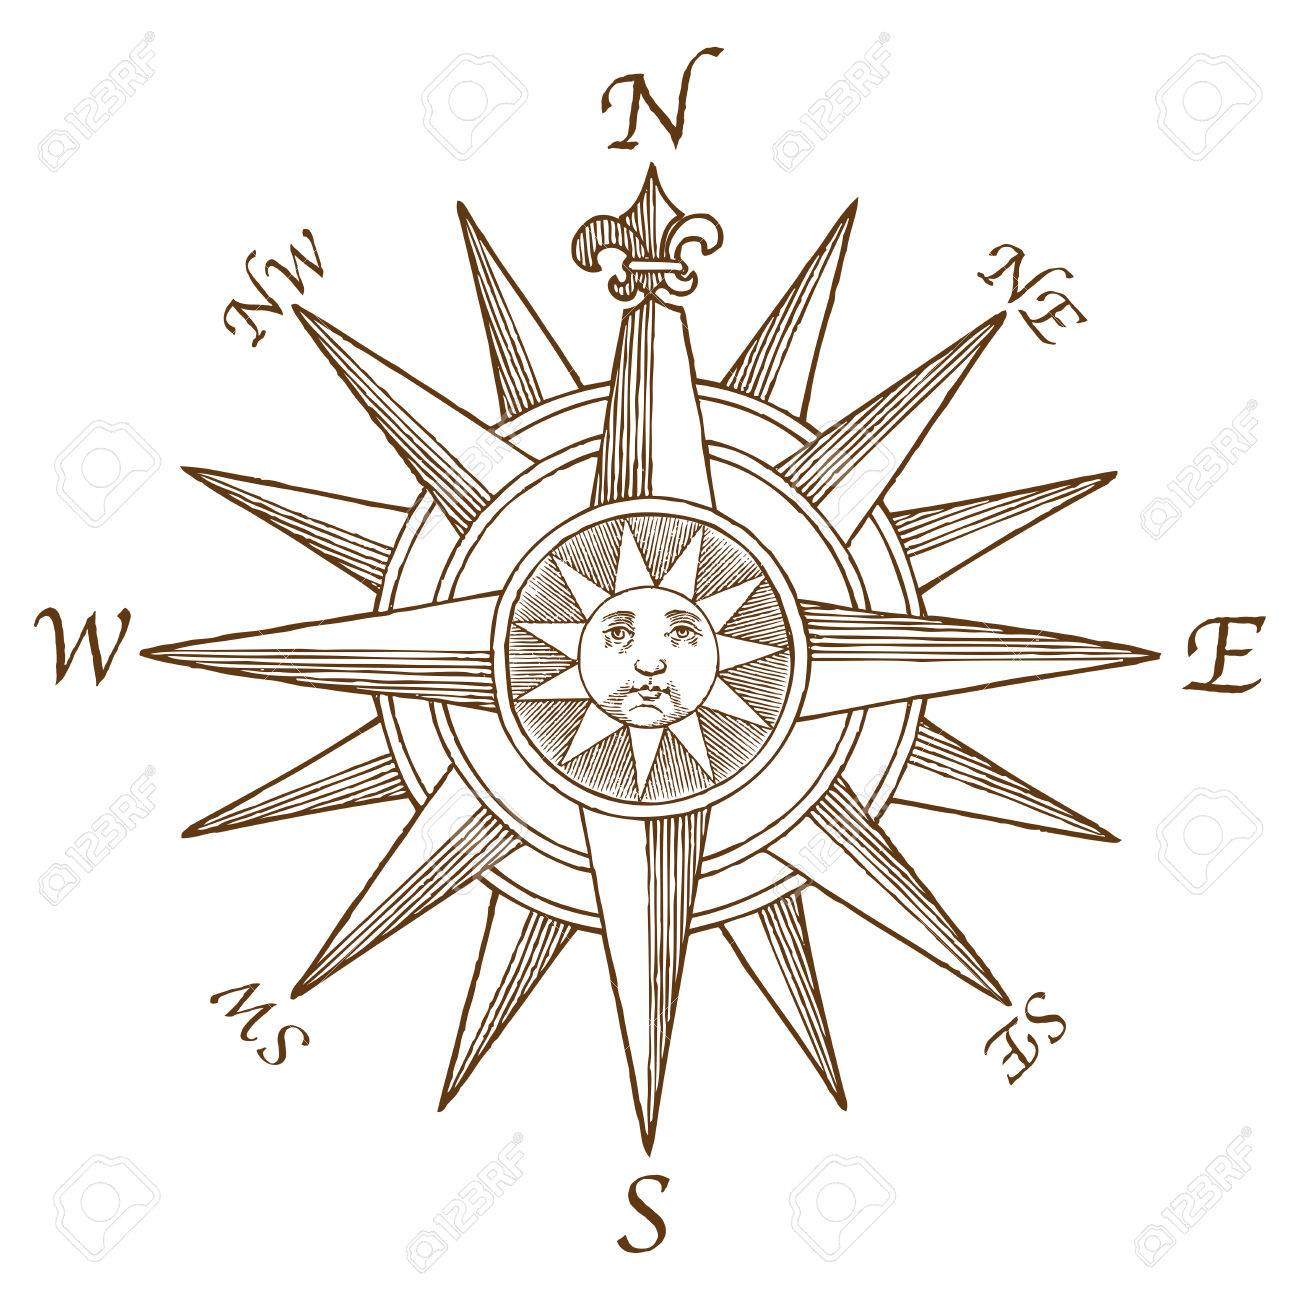 high quality vector vintage compass rose engraving with a classic